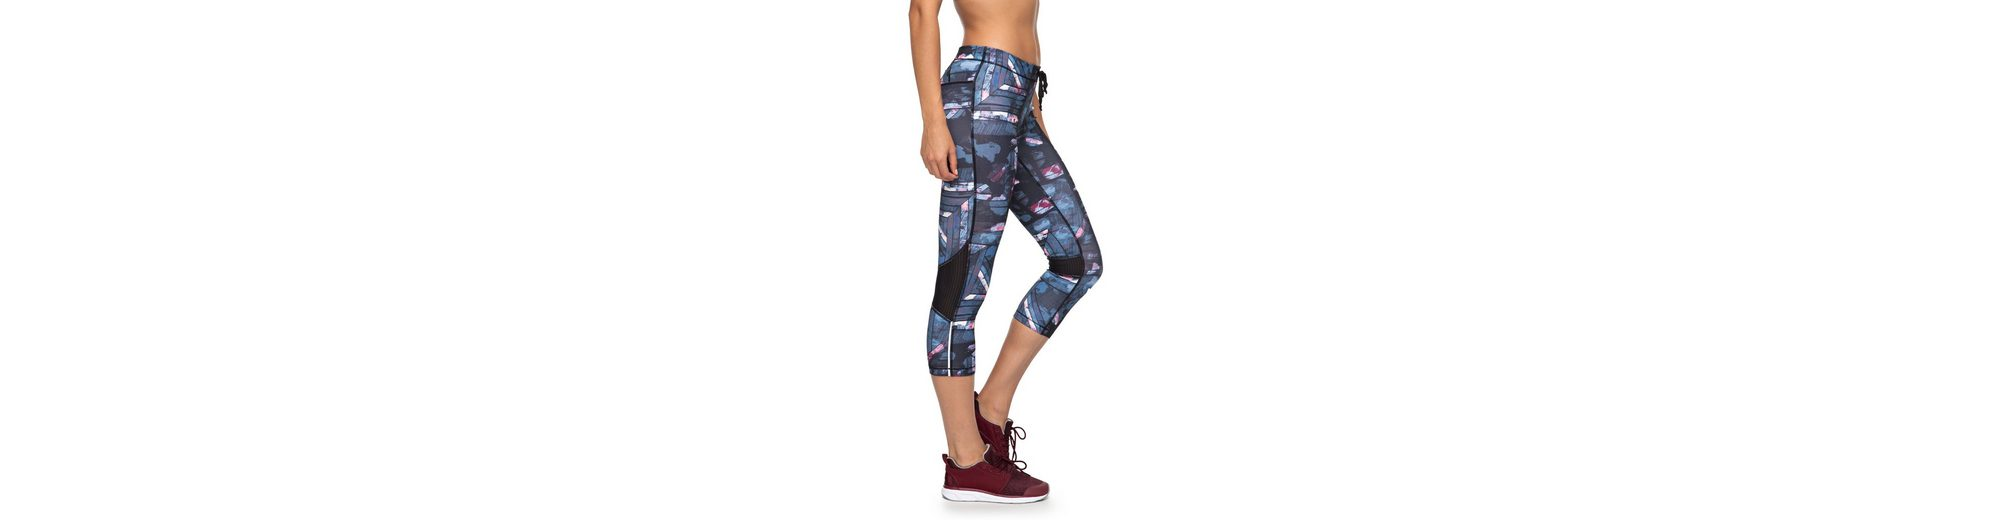 Roxy Funktionelle Lauf-Capris Stay On Auslass maEBmy2bC